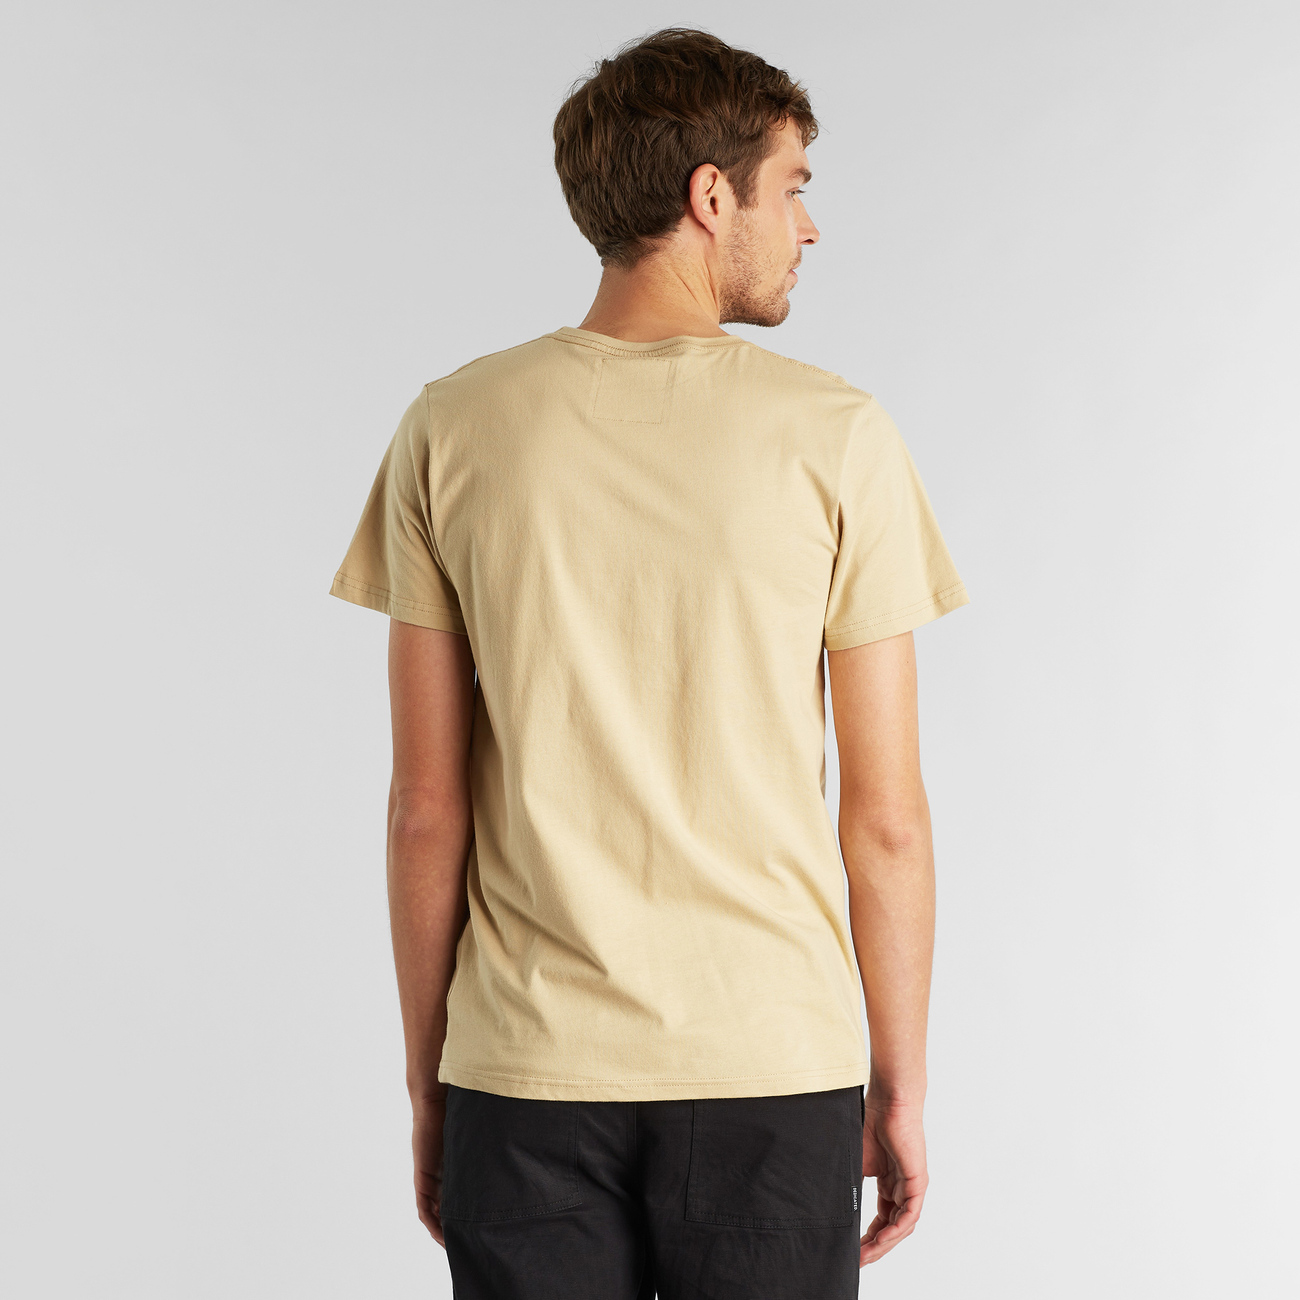 T-shirt Stockholm Lucy Beige